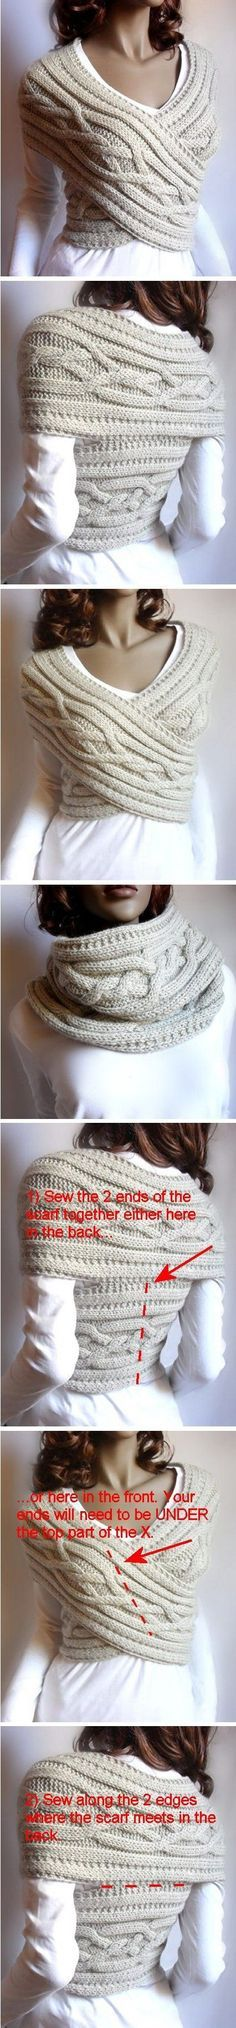 Sew a scarf into a vest.                           This would look good on Olivia.